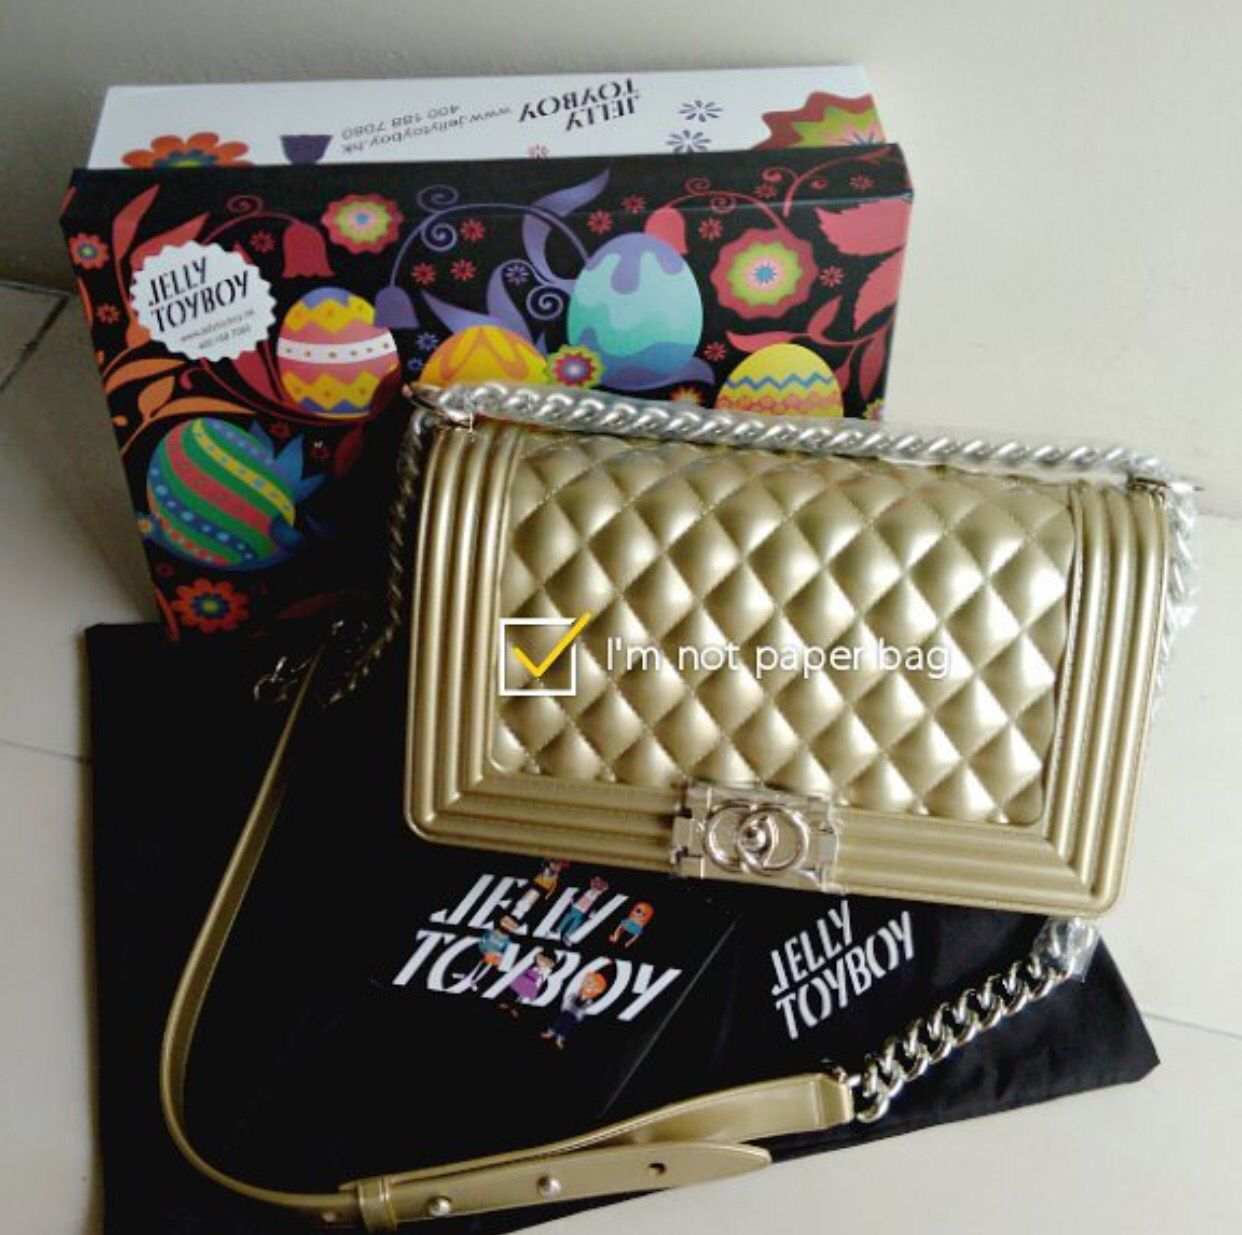 f4971e83133e Jelly toyboy chance champagne gold in silver Jelly, Chanel Boy Bag,  Champagne, Handbags